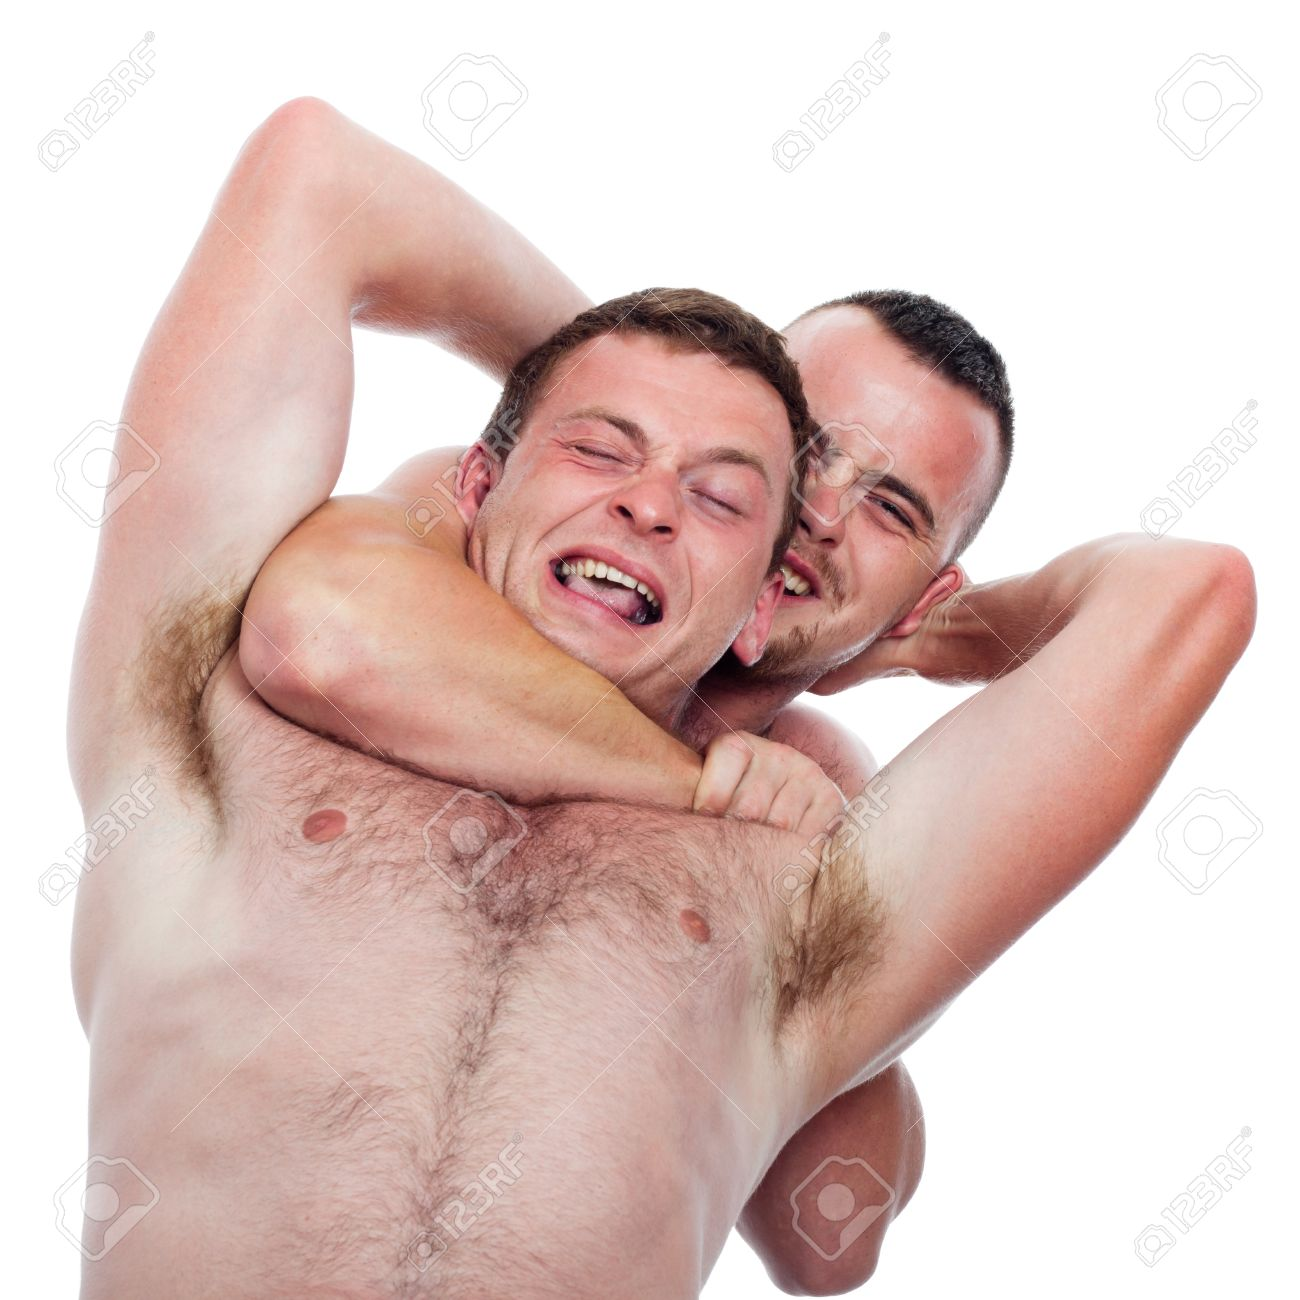 Two shirtless men fighting and wrestling, isolated on white background. Stock Photo - 15288347